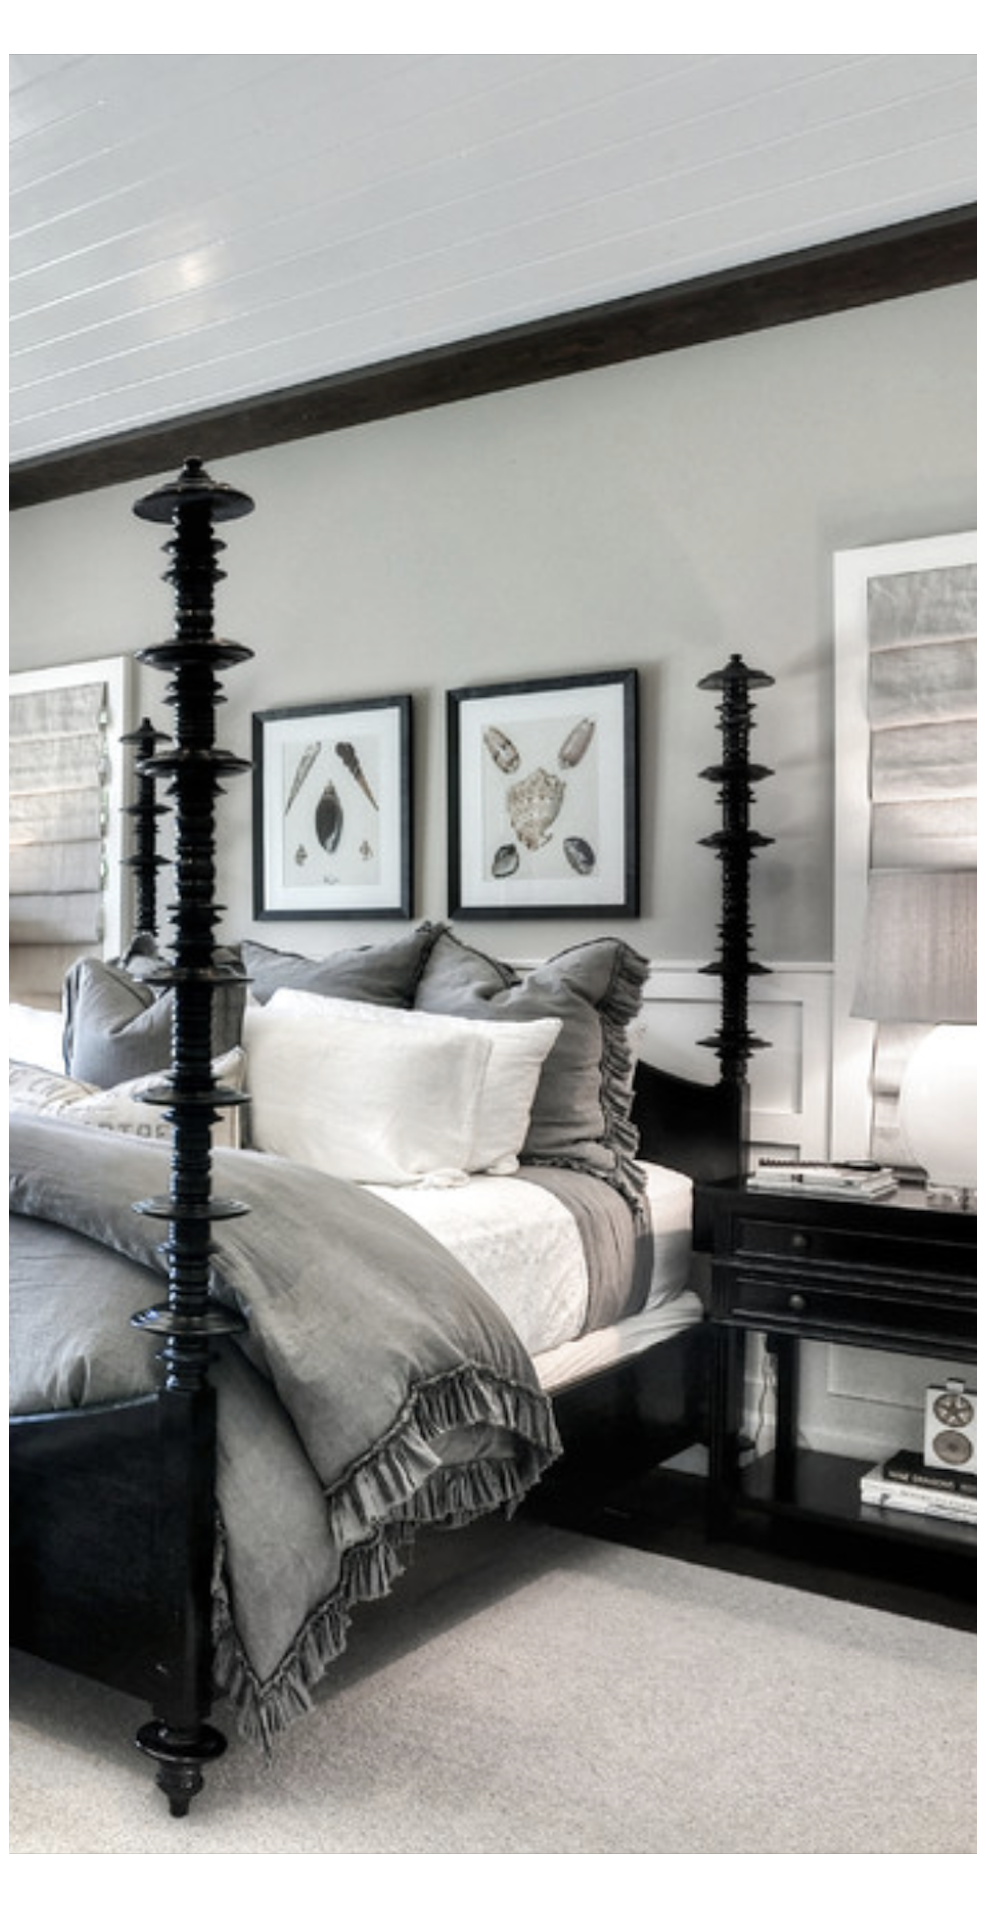 Gray And Black Bedroom Furniture Grayandblackbedroomfurniture Gray White And Black Bedroom In 2021 Gray Master Bedroom Black Bed Frame Black Master Bedroom